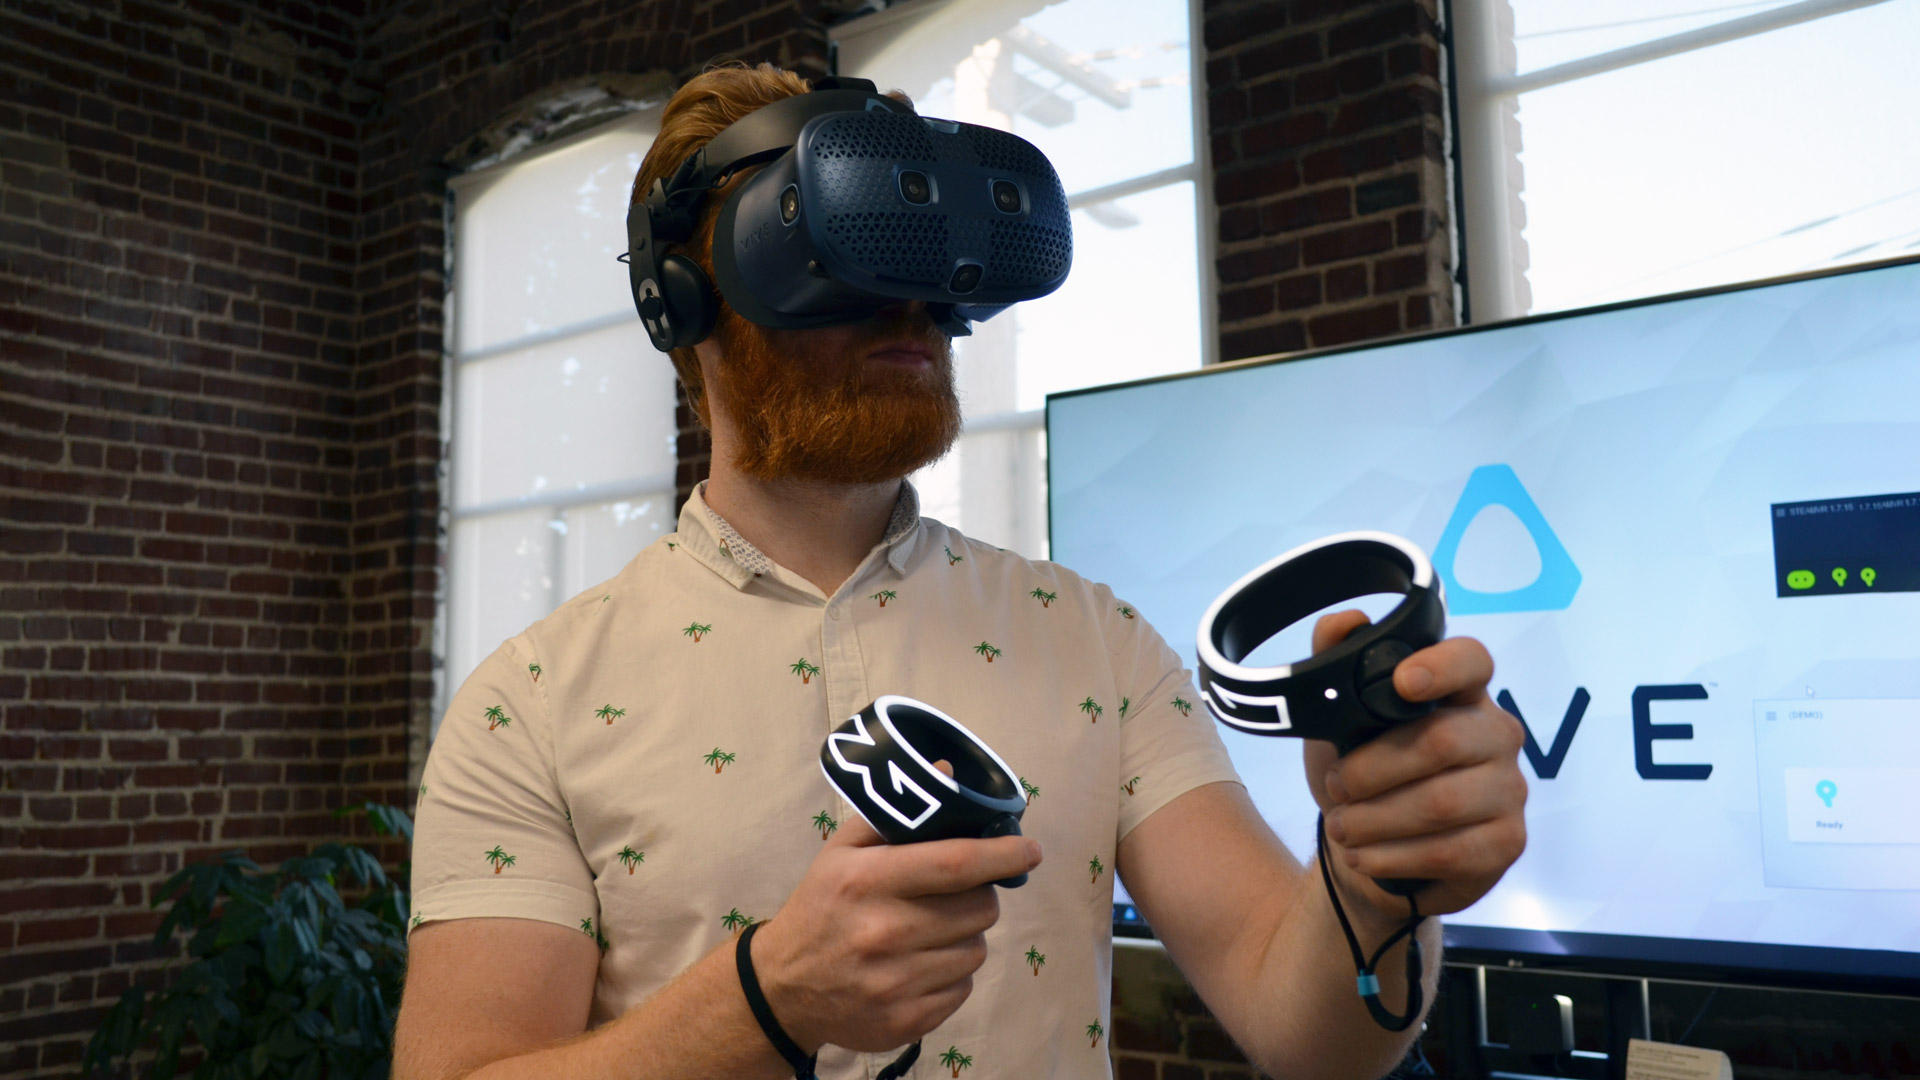 Hands-on: Vive Cosmos Aims to Reboot the Vive Experience